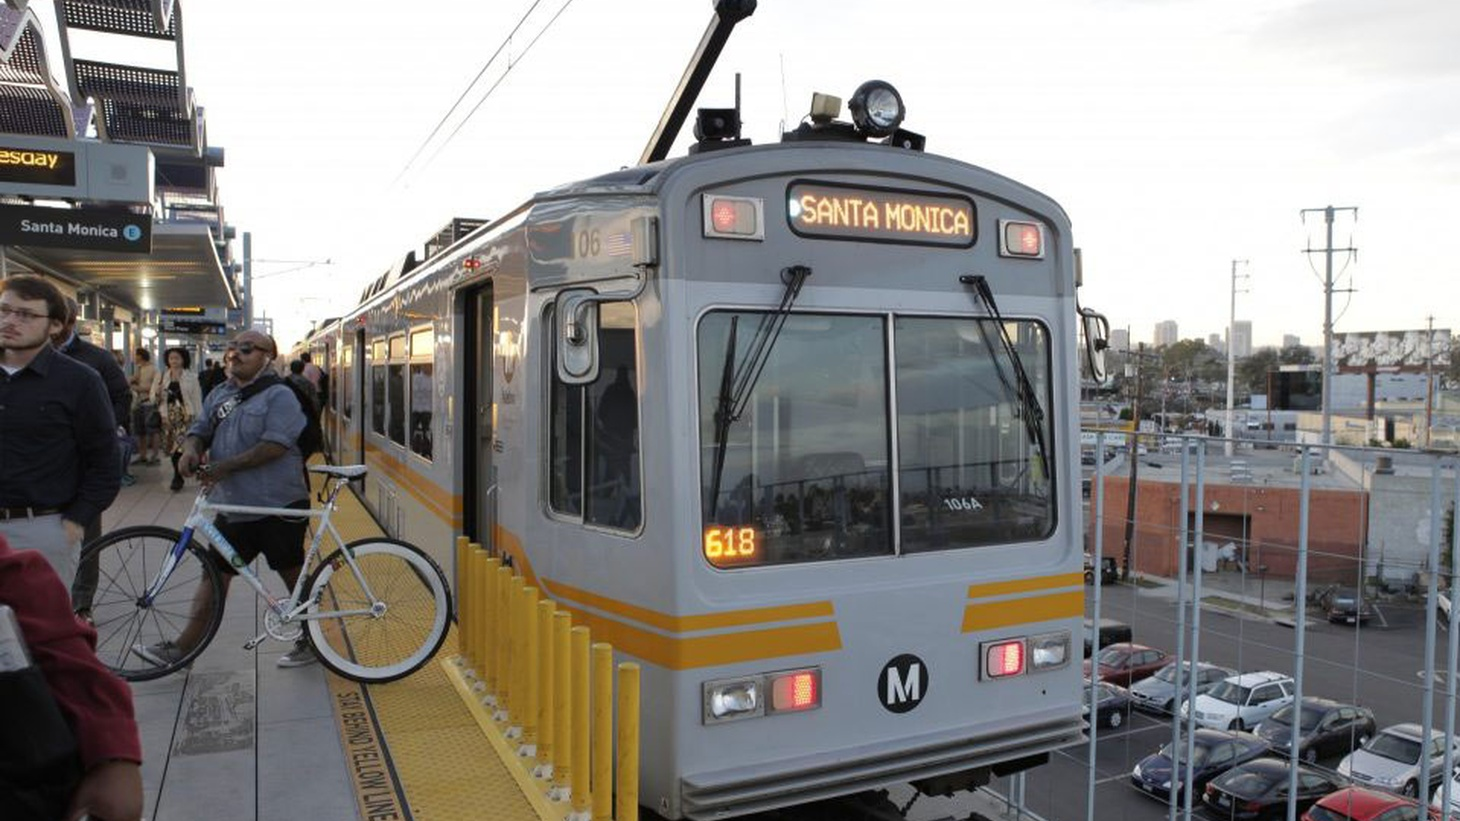 Voters in Los Angeles on Tuesday agreed to tax themselves to pay for mass transit, homeless housing, and parks. They also want developers to pay for affordable housing. And Santa Monica voters rejected a controversial anti-density measure.